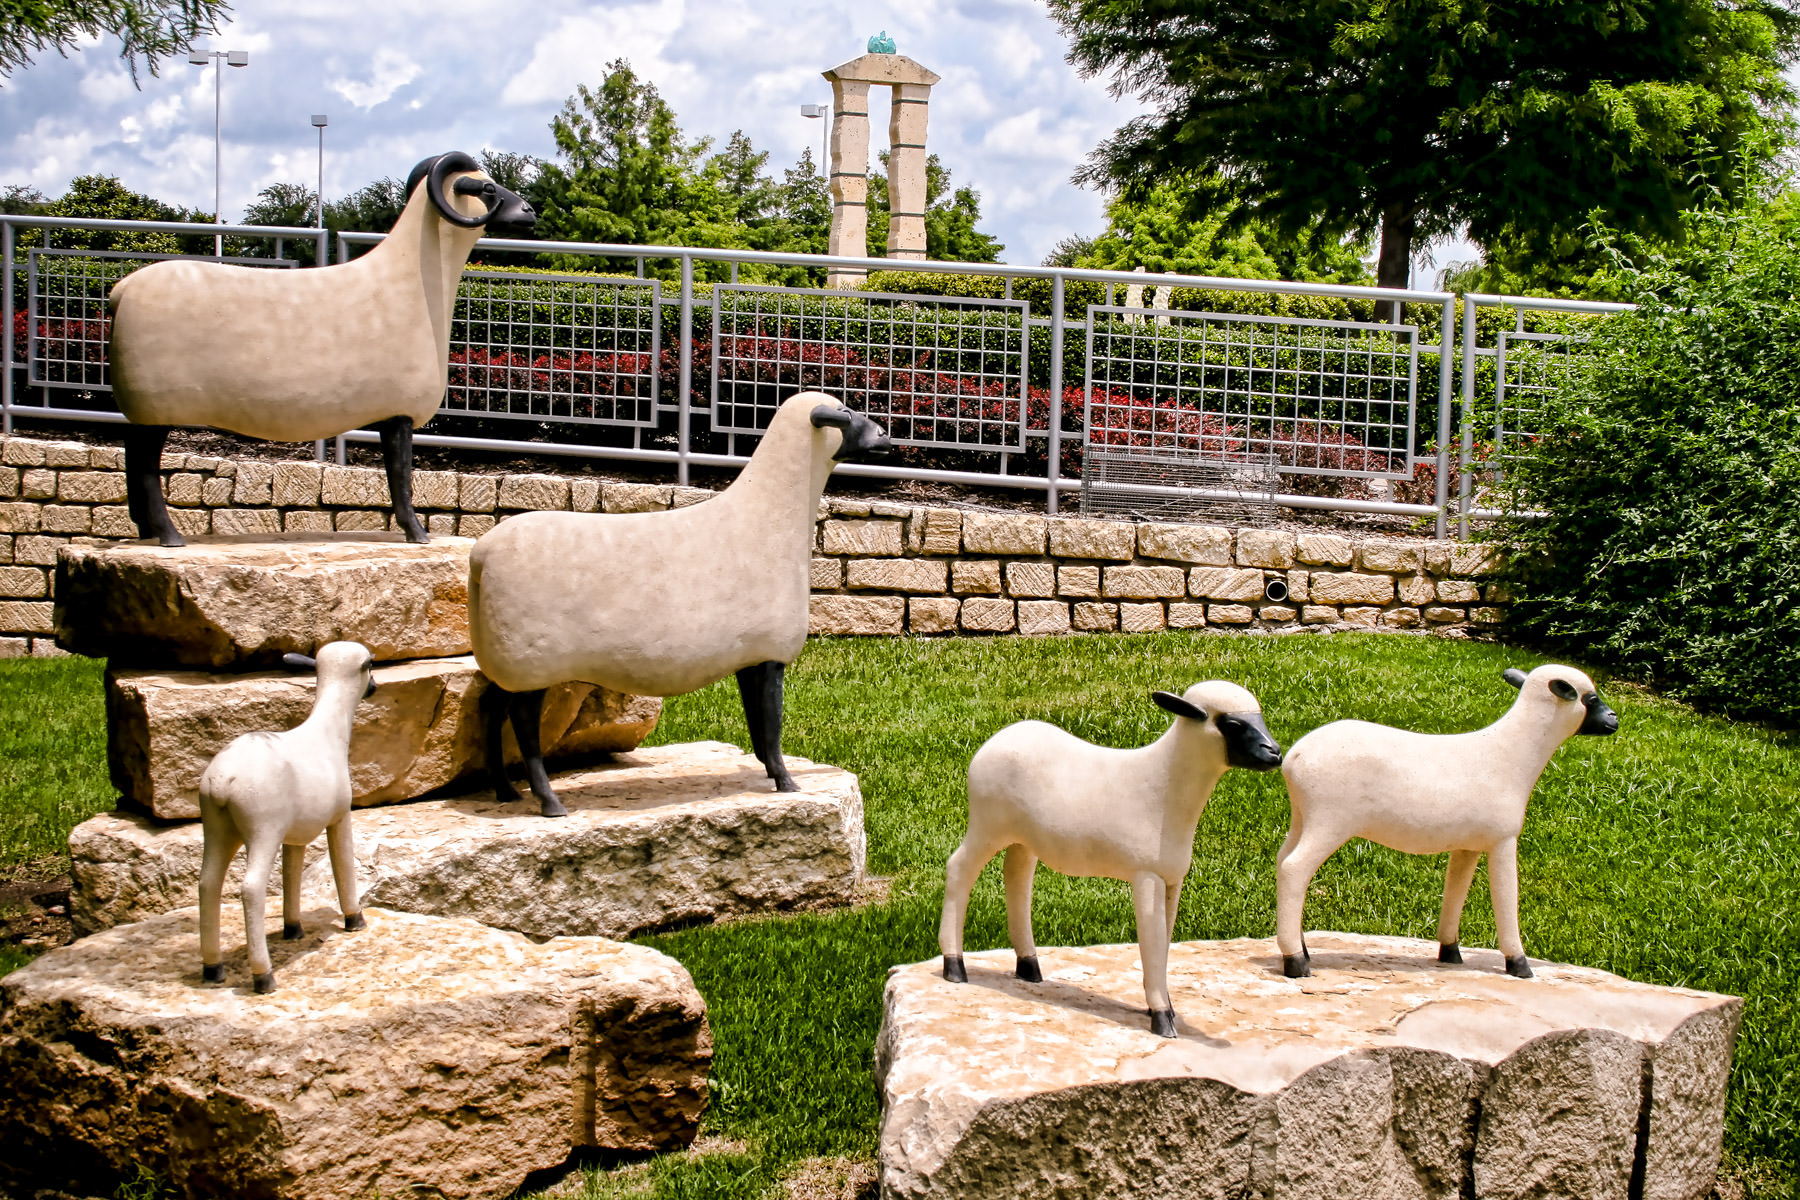 A sculpture of sheep at the Texas Sculpture Garden in Frisco, Texas.